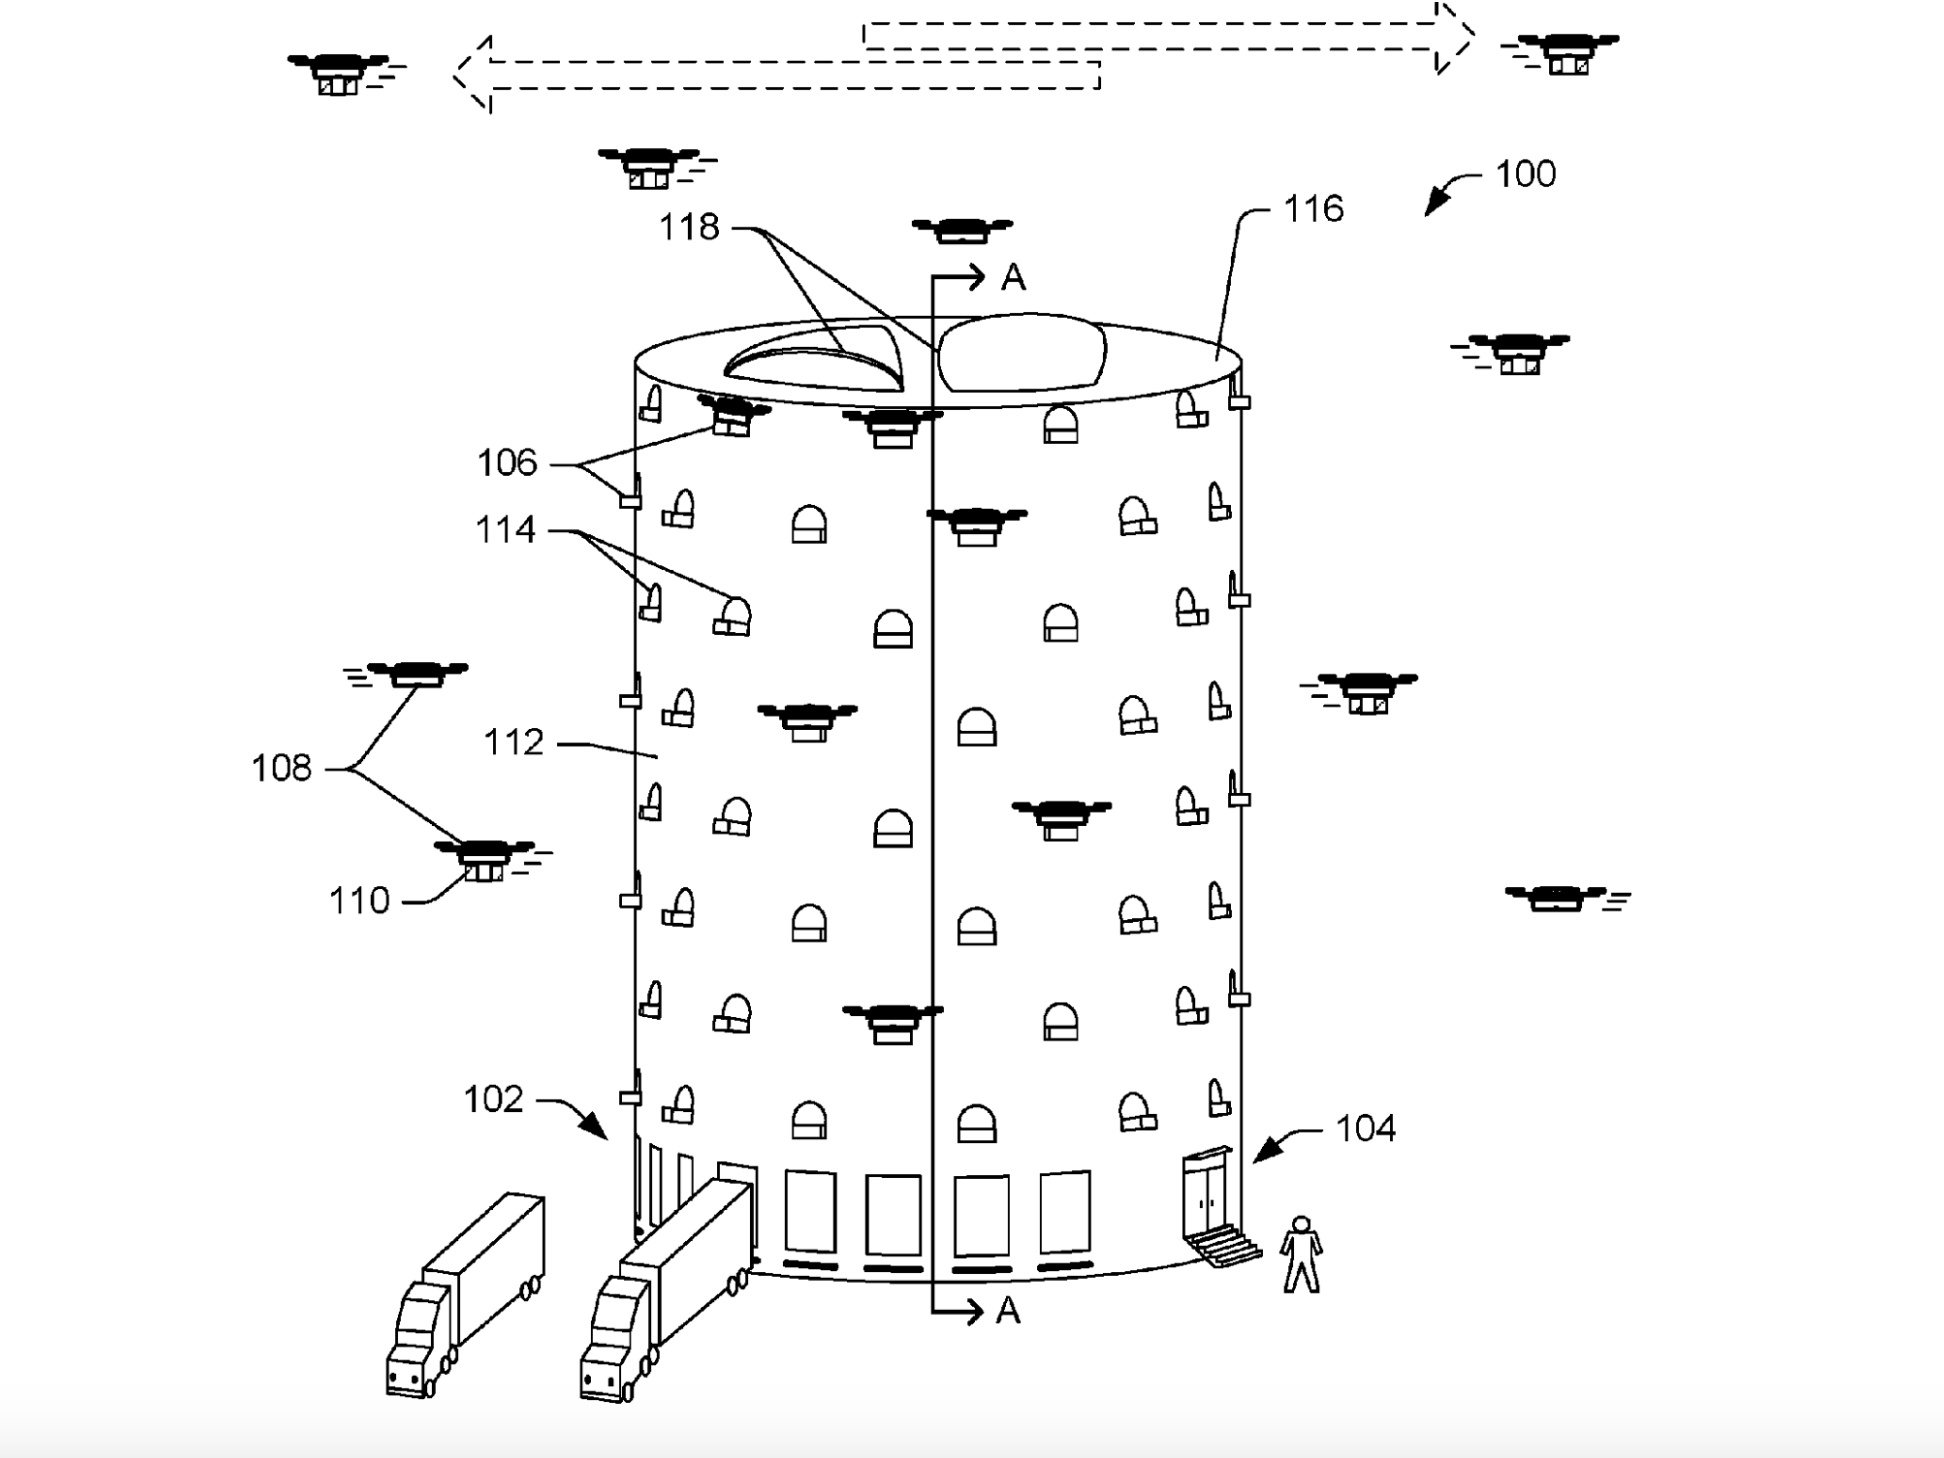 amazon has applied to patent a beehive like drone tower jackamazon has applied to patent a beehive like drone tower (amzn)